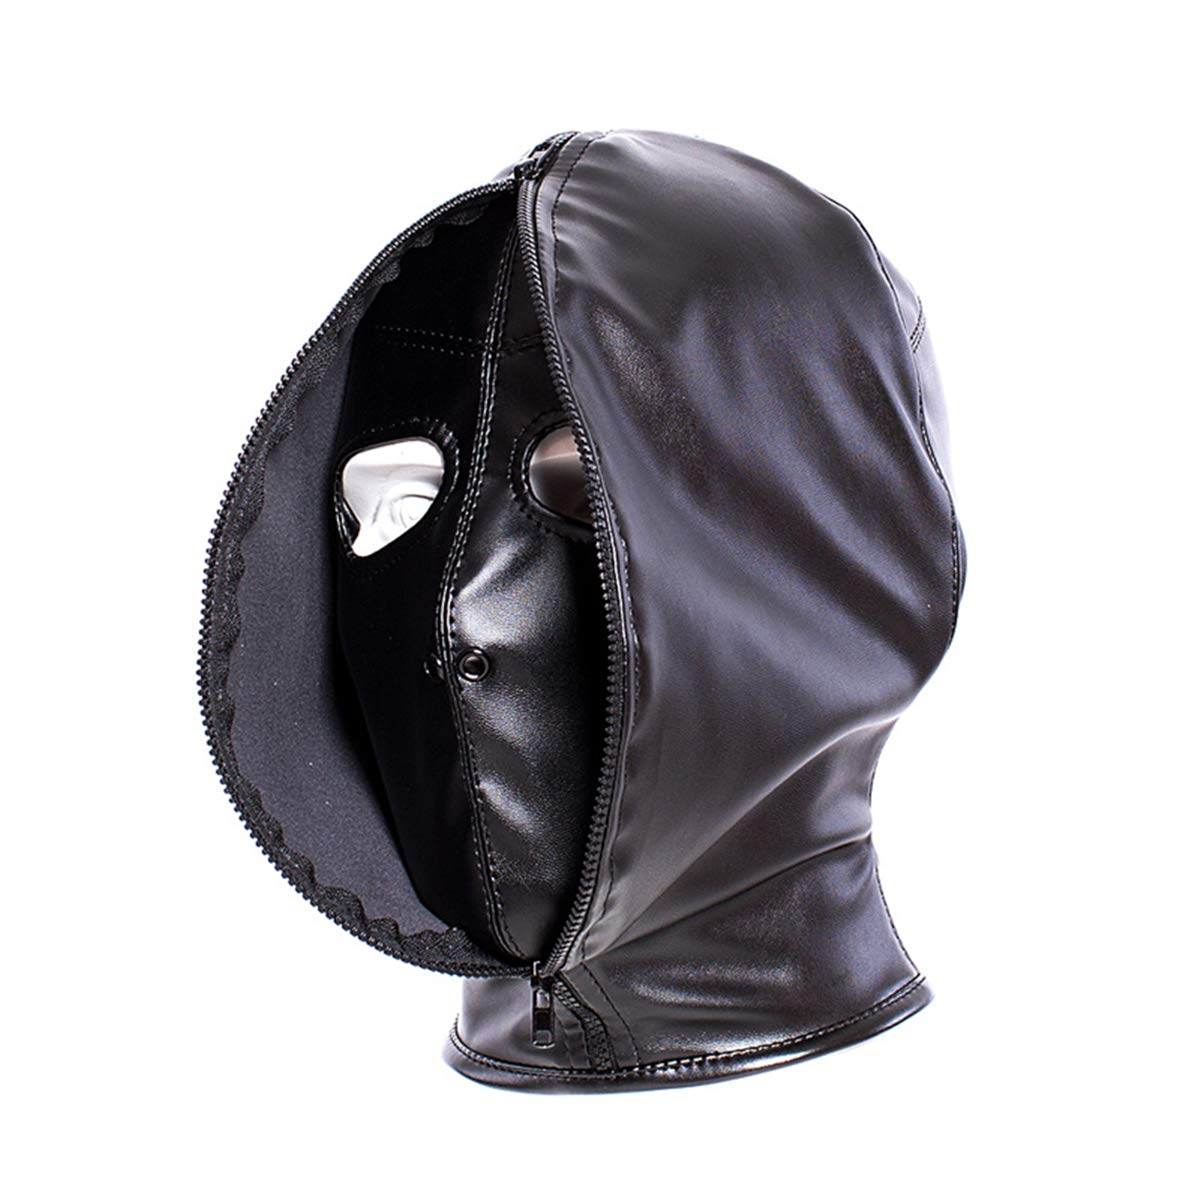 Santchcz Double Layer BDSM Bondage Hood Mask Zipper Closed Erotic Toy, Blackout Mask Blindfold,Head Harness Cosplay Accessories by Santchcz